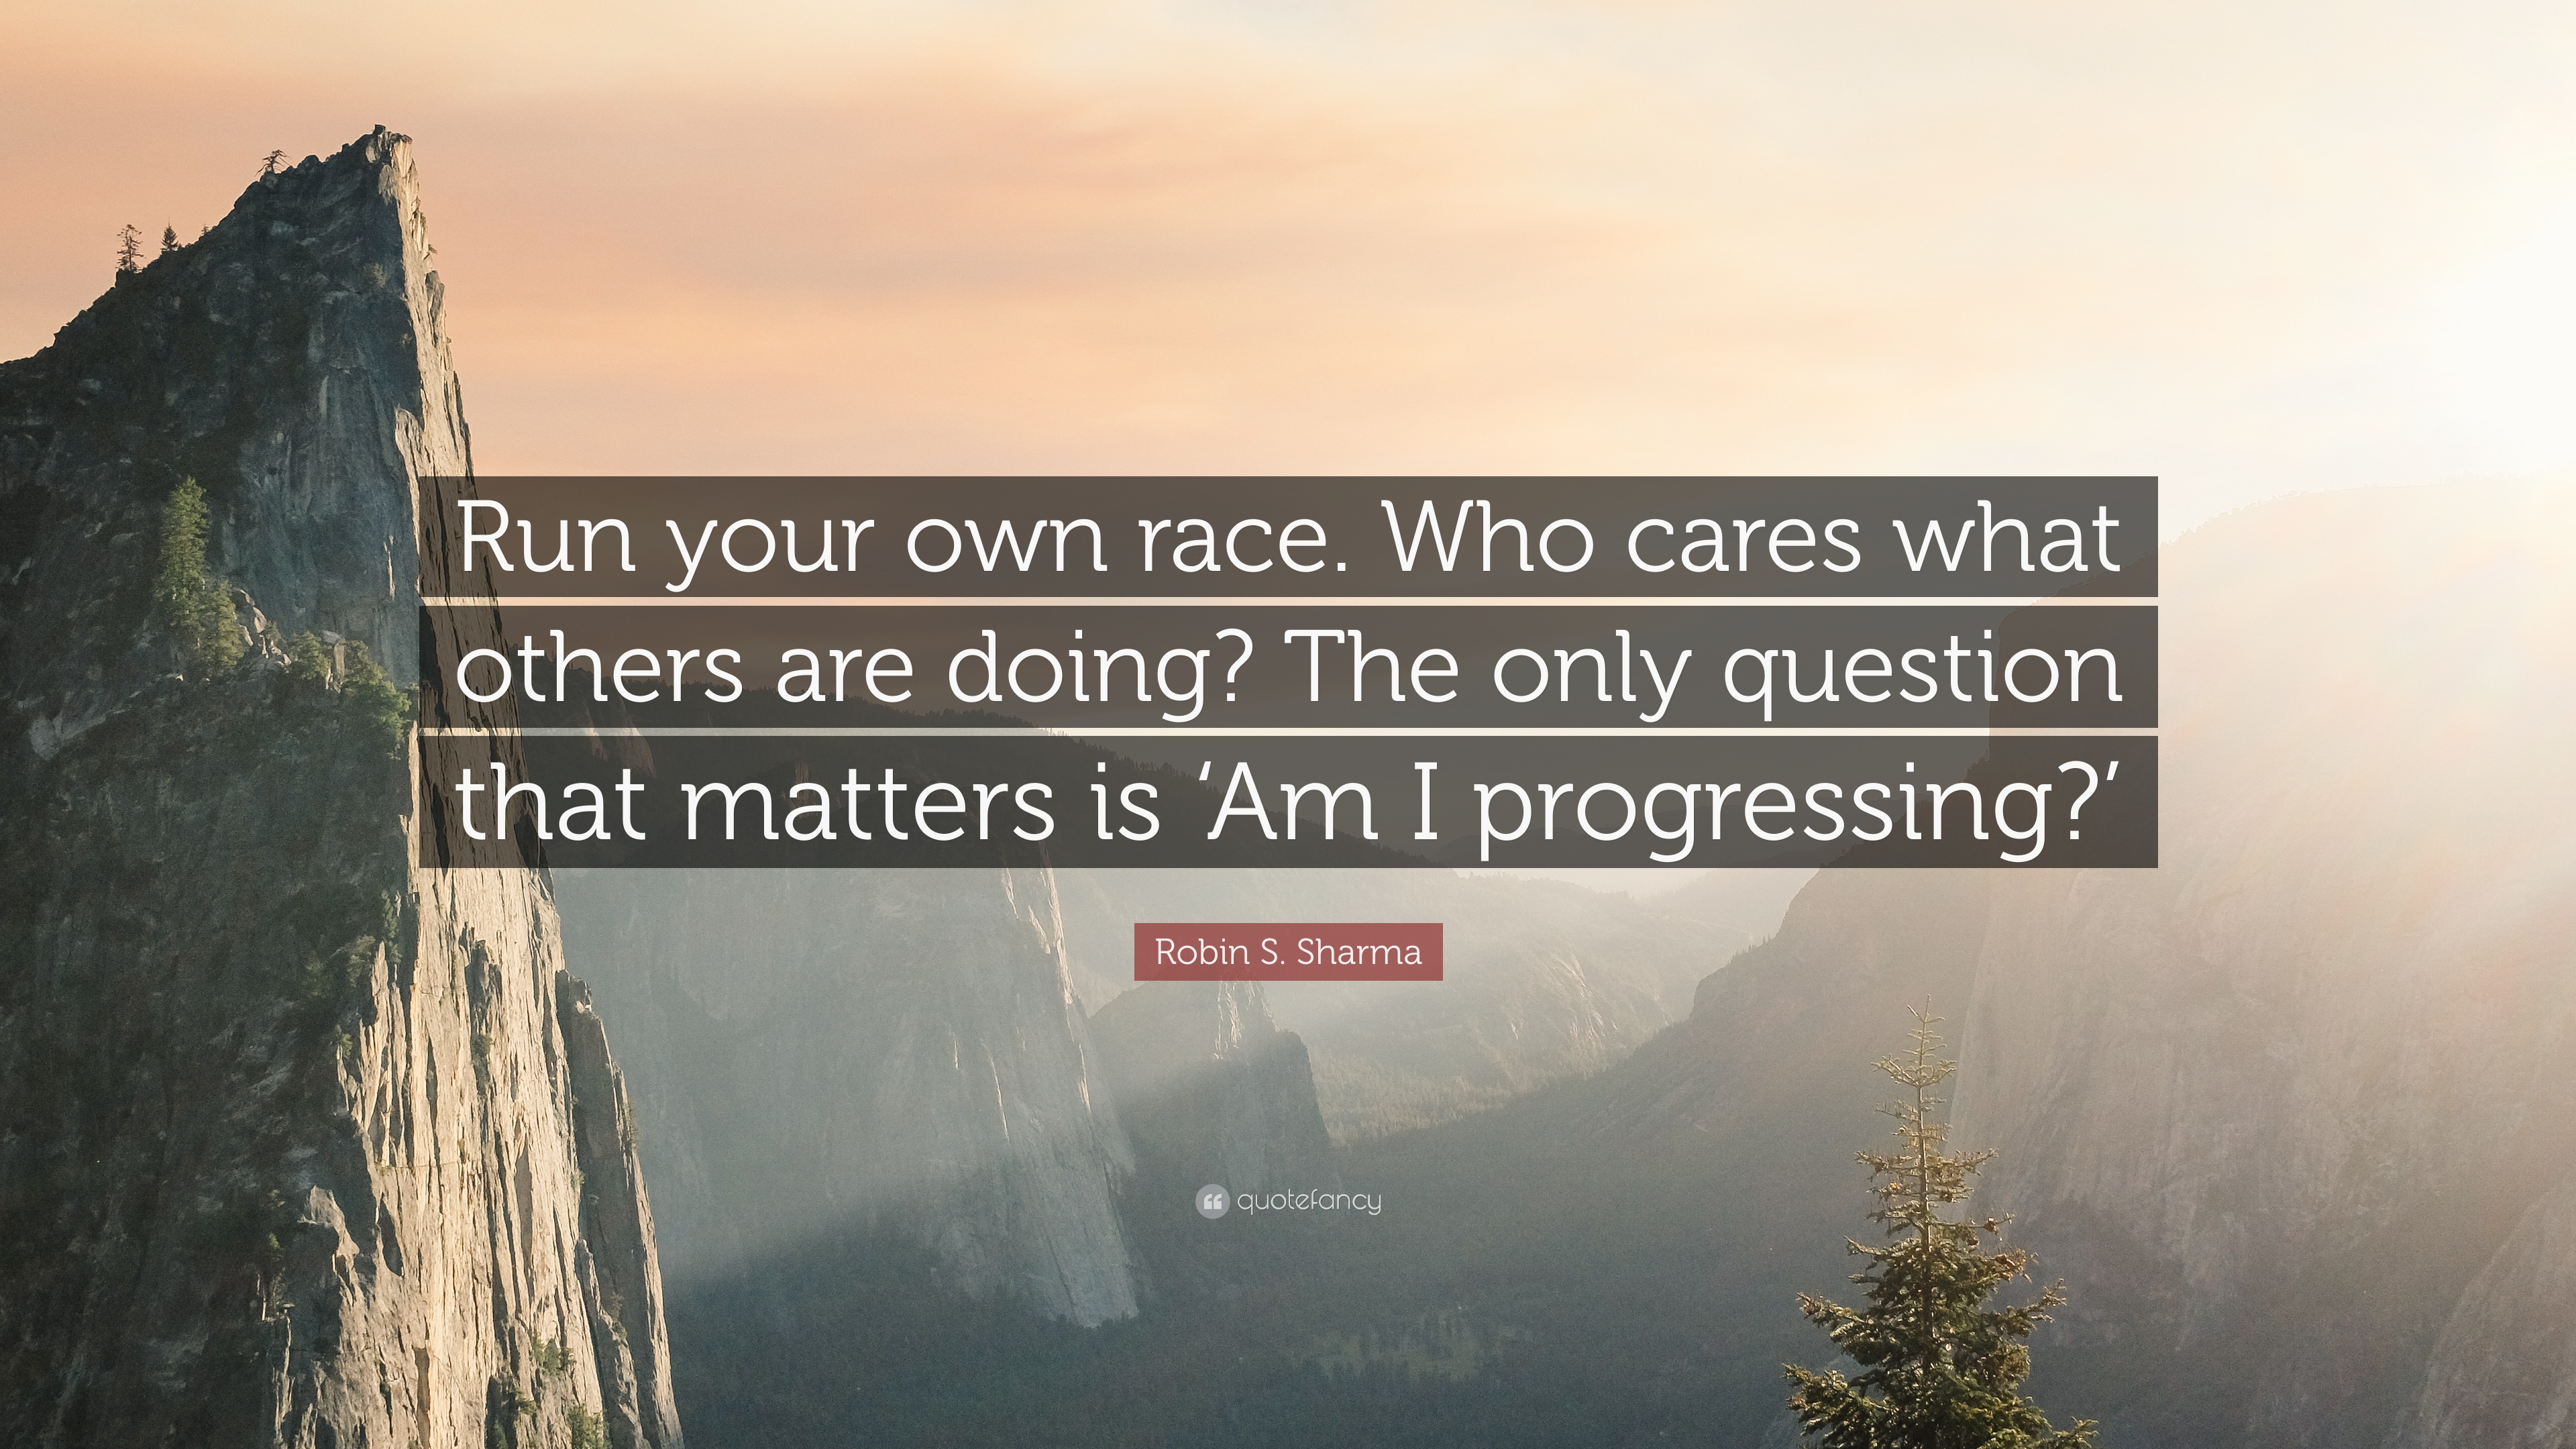 Robin S Sharma Quote Run Your Own Race Who Cares What Others Are